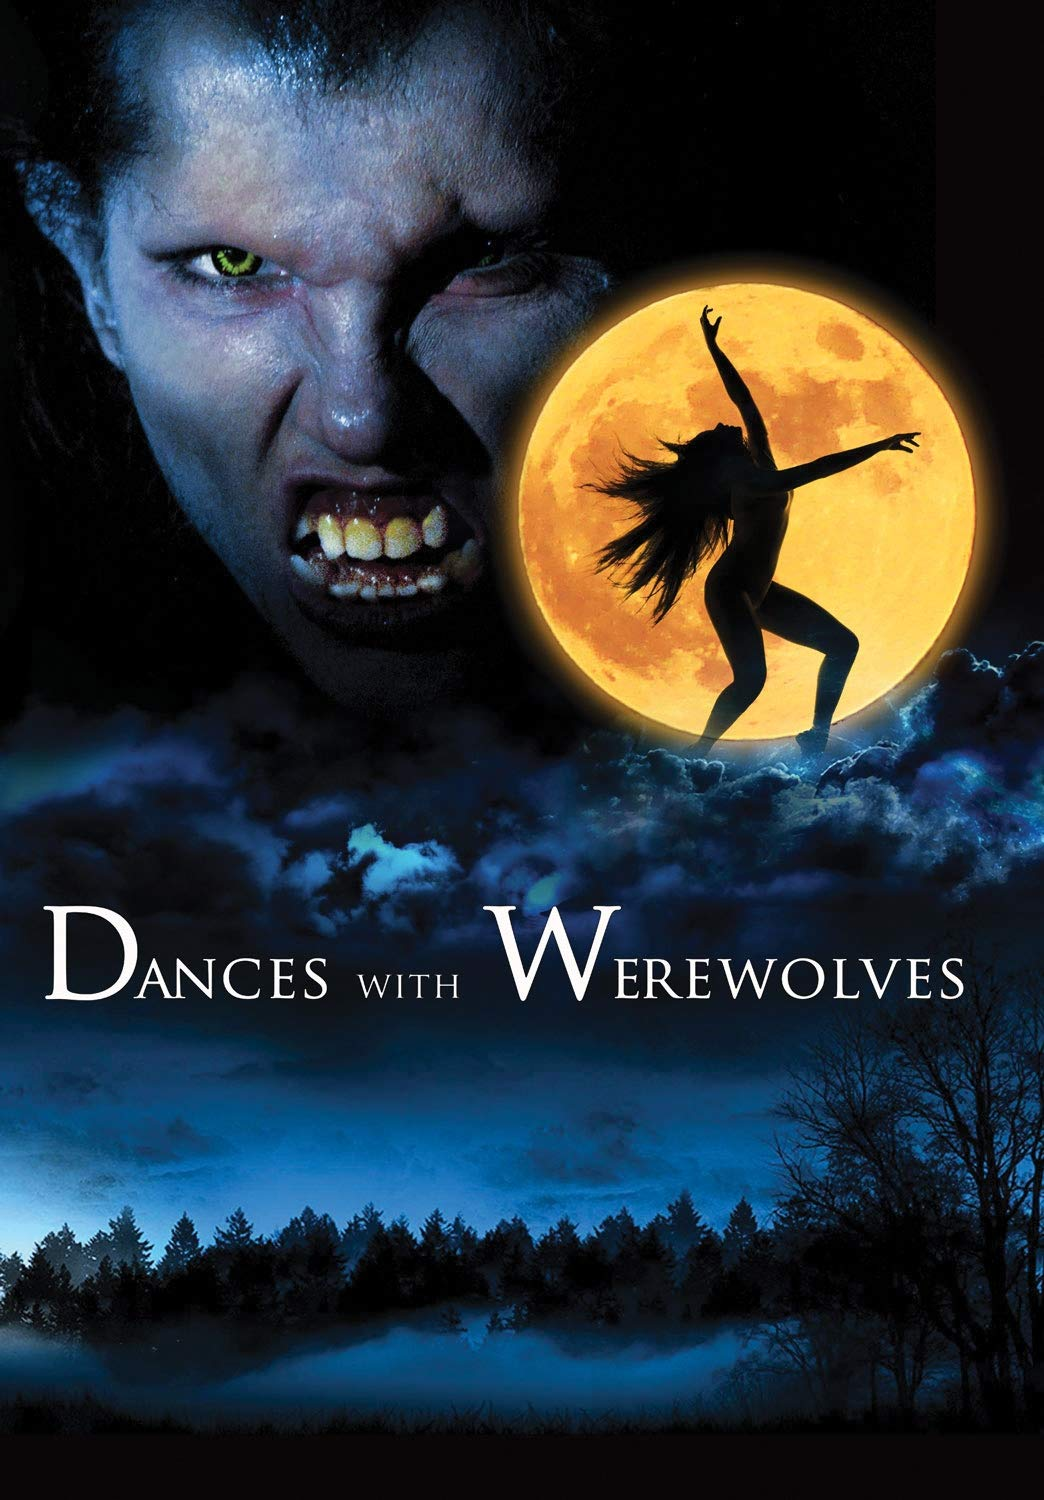 Dances With Werewolves US DVD